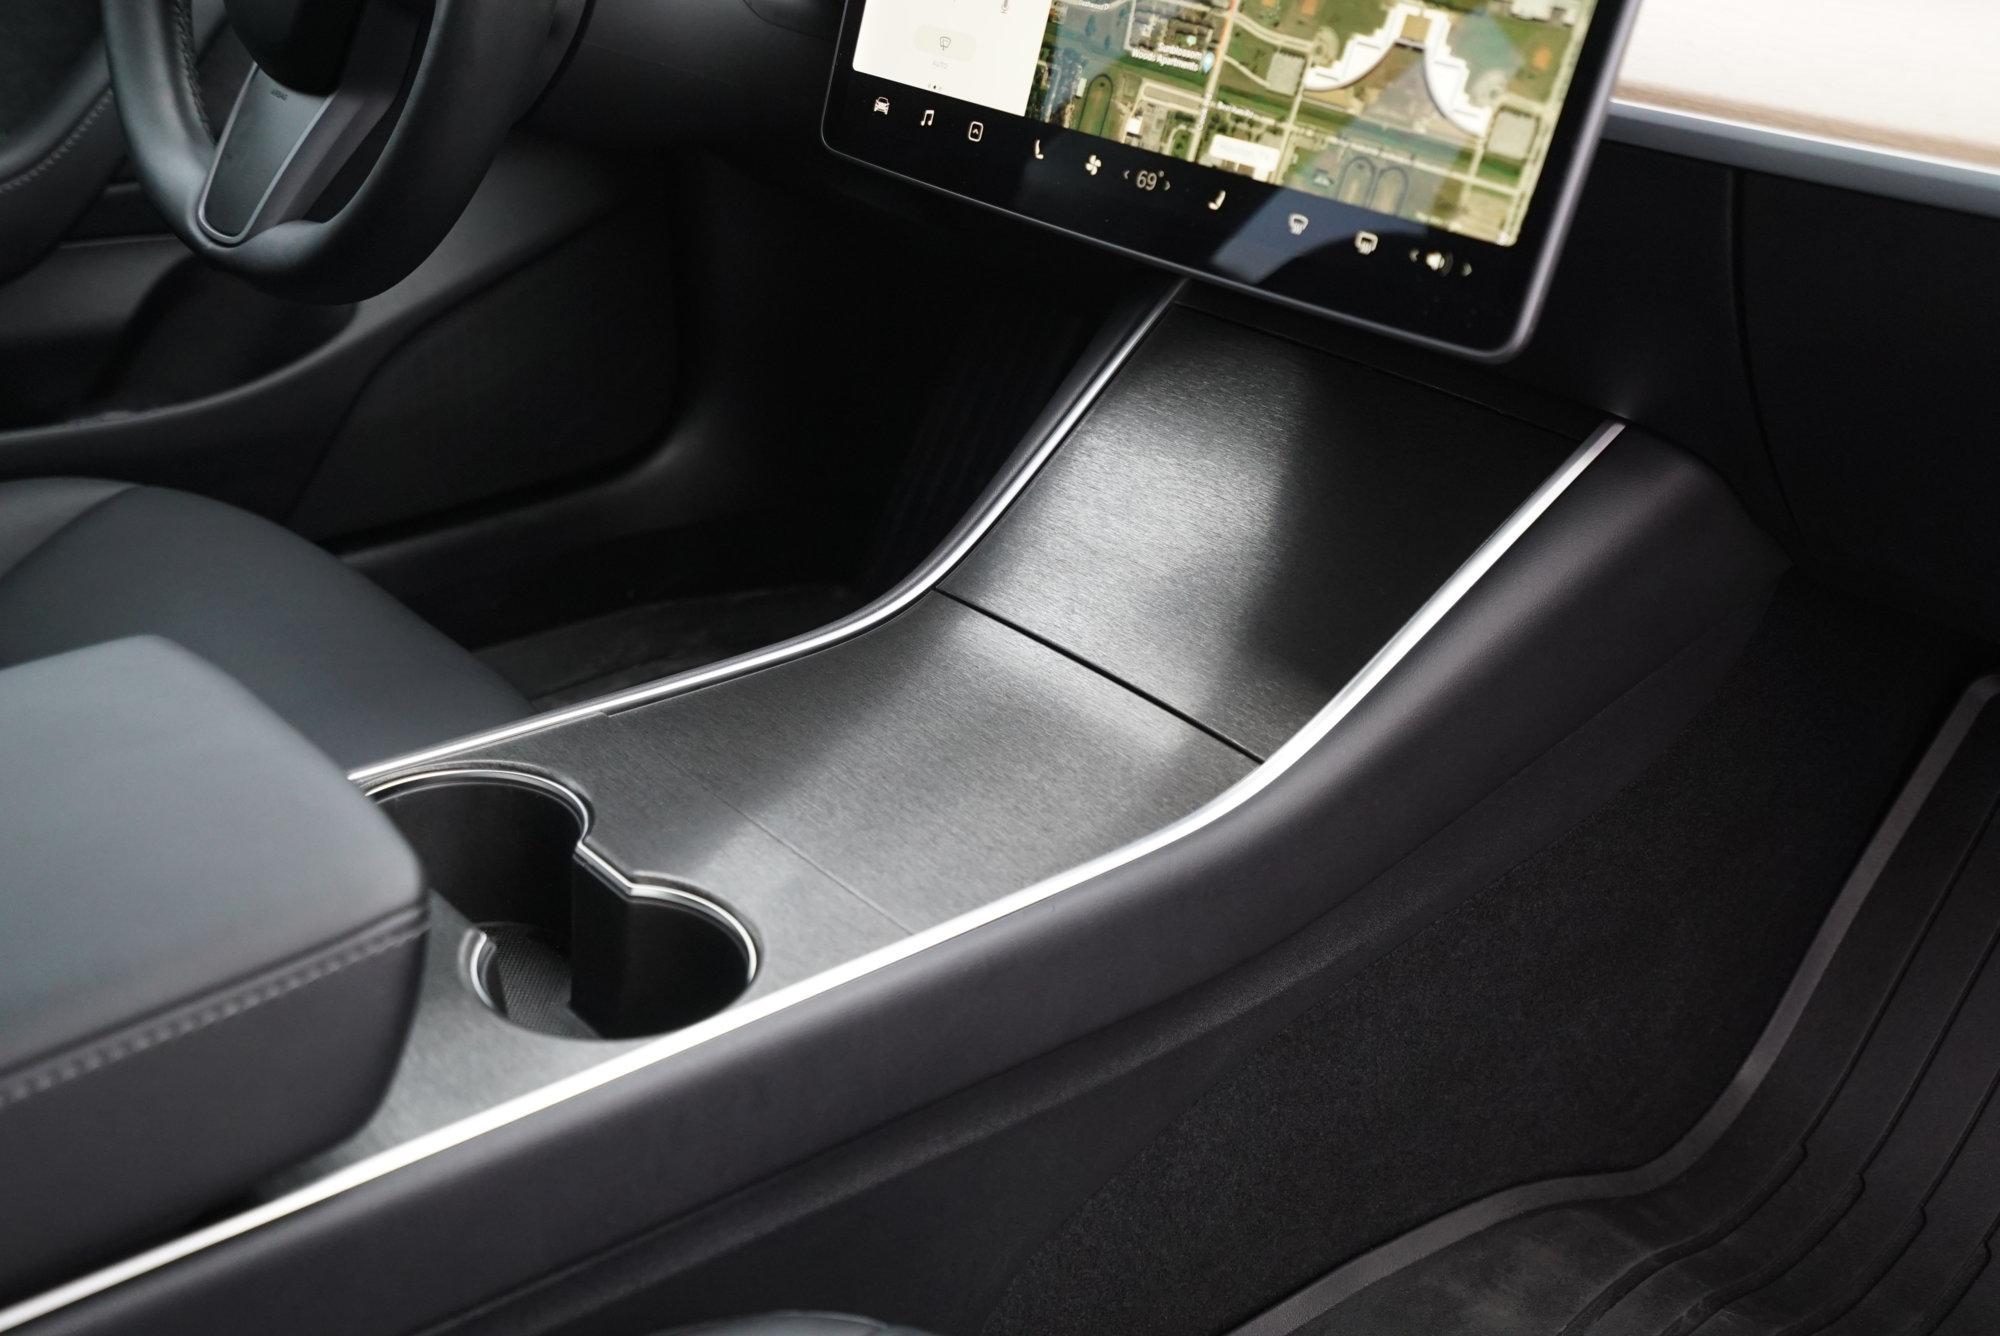 center console cleaned2.jpg